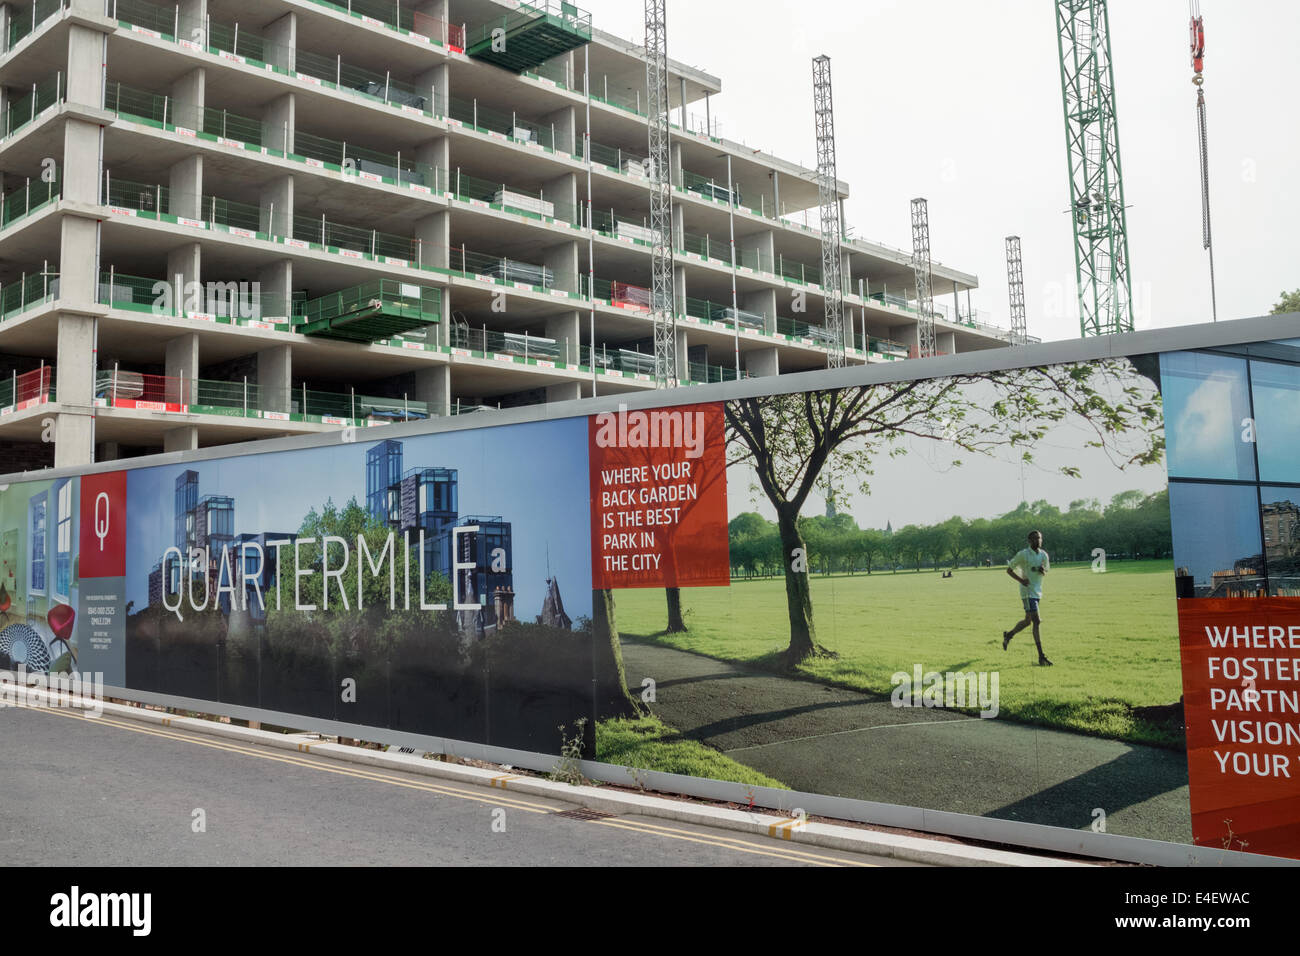 Billboard at the side of a street with a new apartment block under construction in Edinburgh's Quartermile - Stock Image